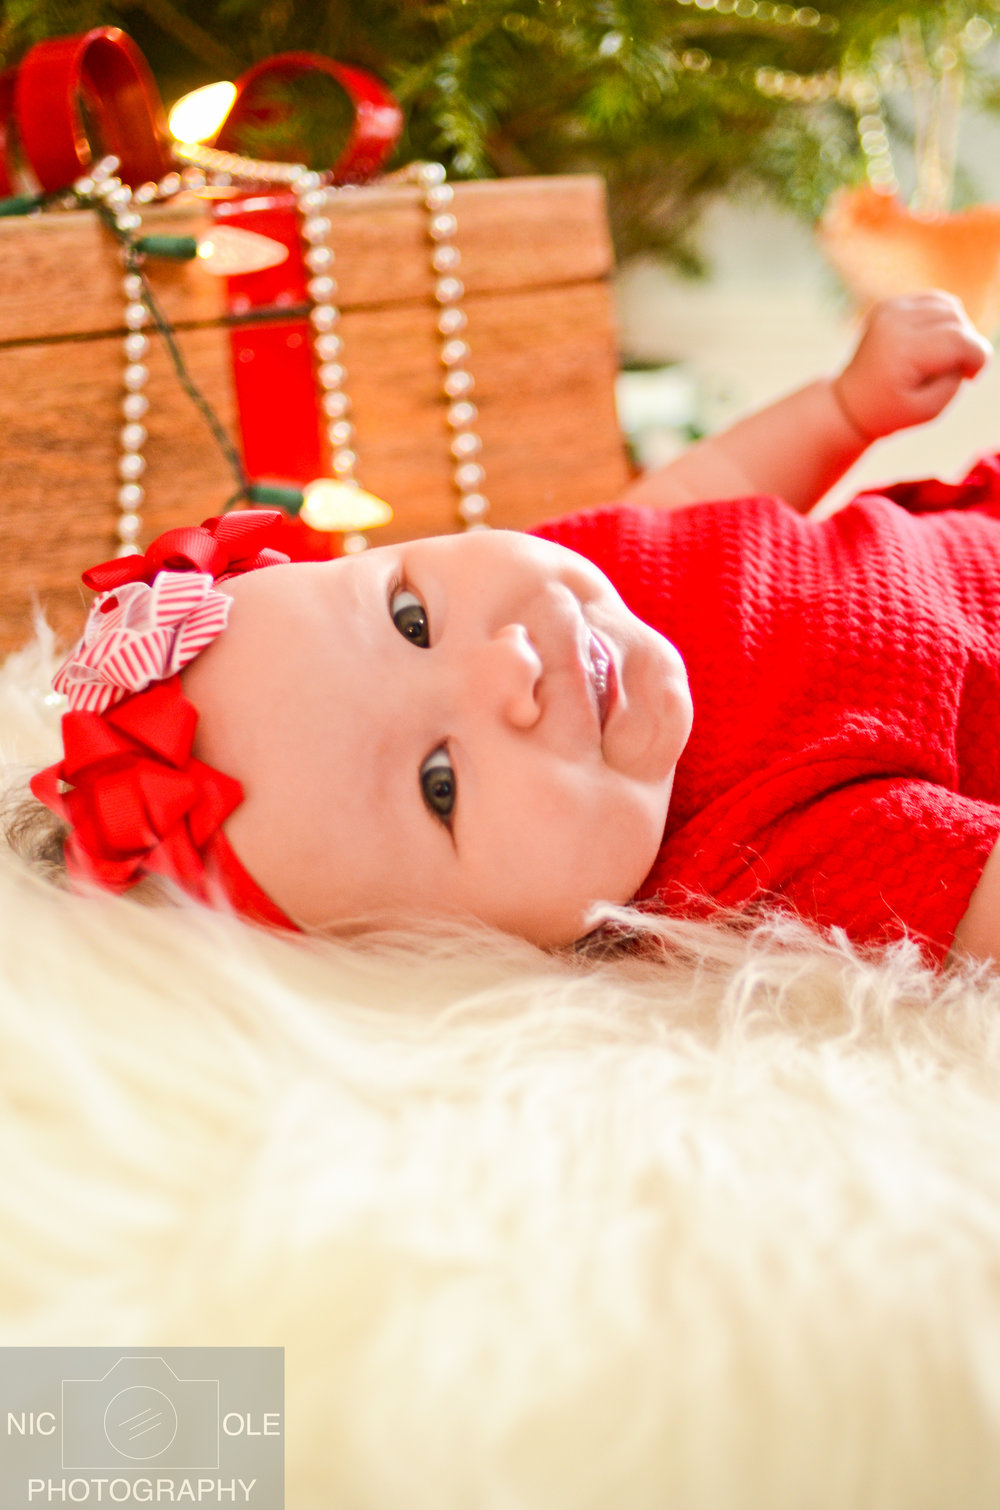 O&Z Christmas Photos- Nic.Ole Photography-6.jpg